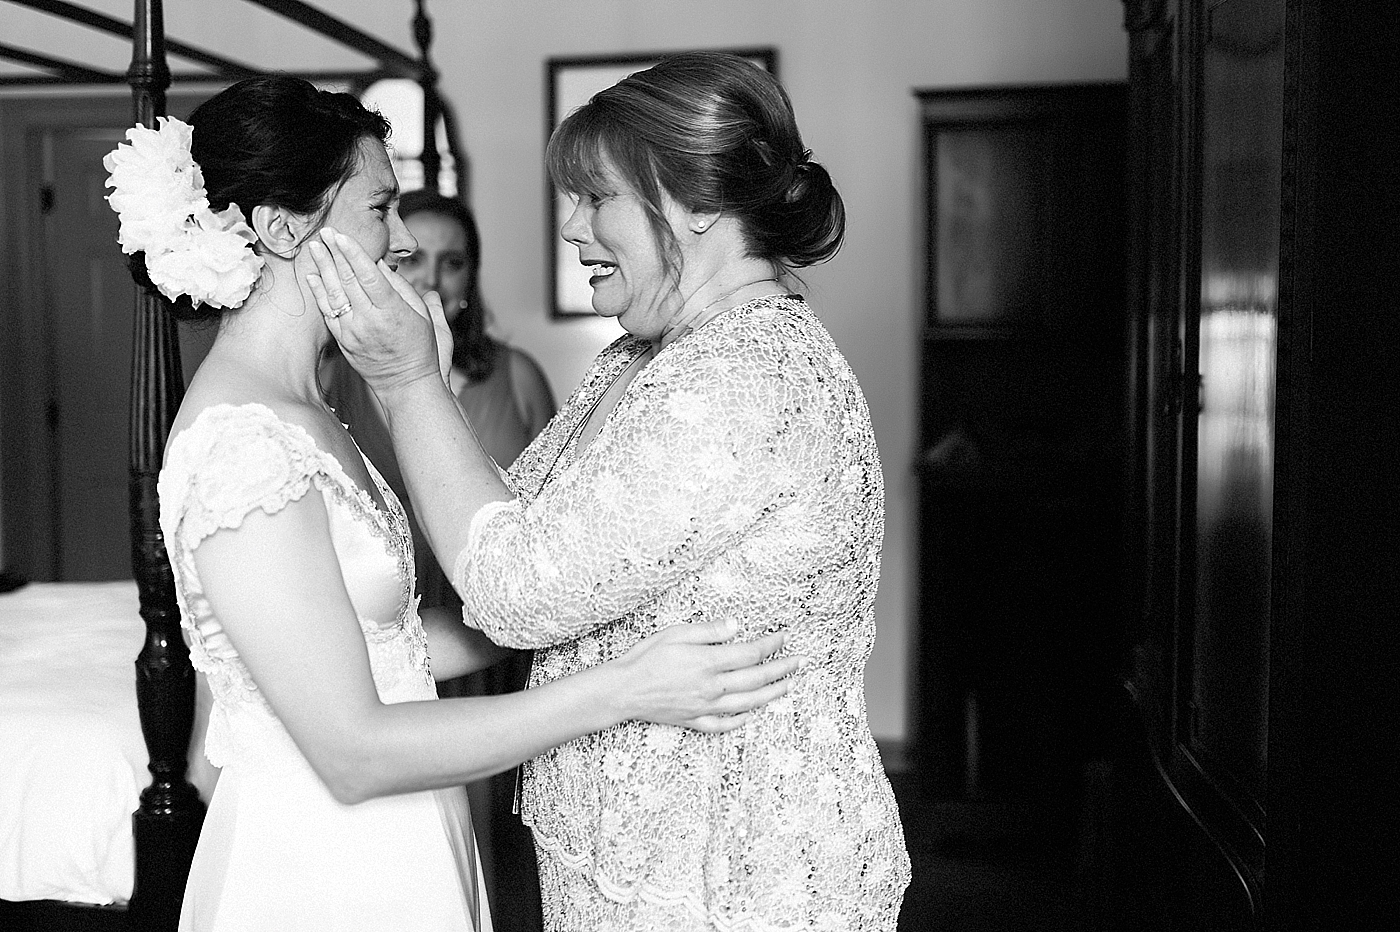 emotional moment between bride and mom